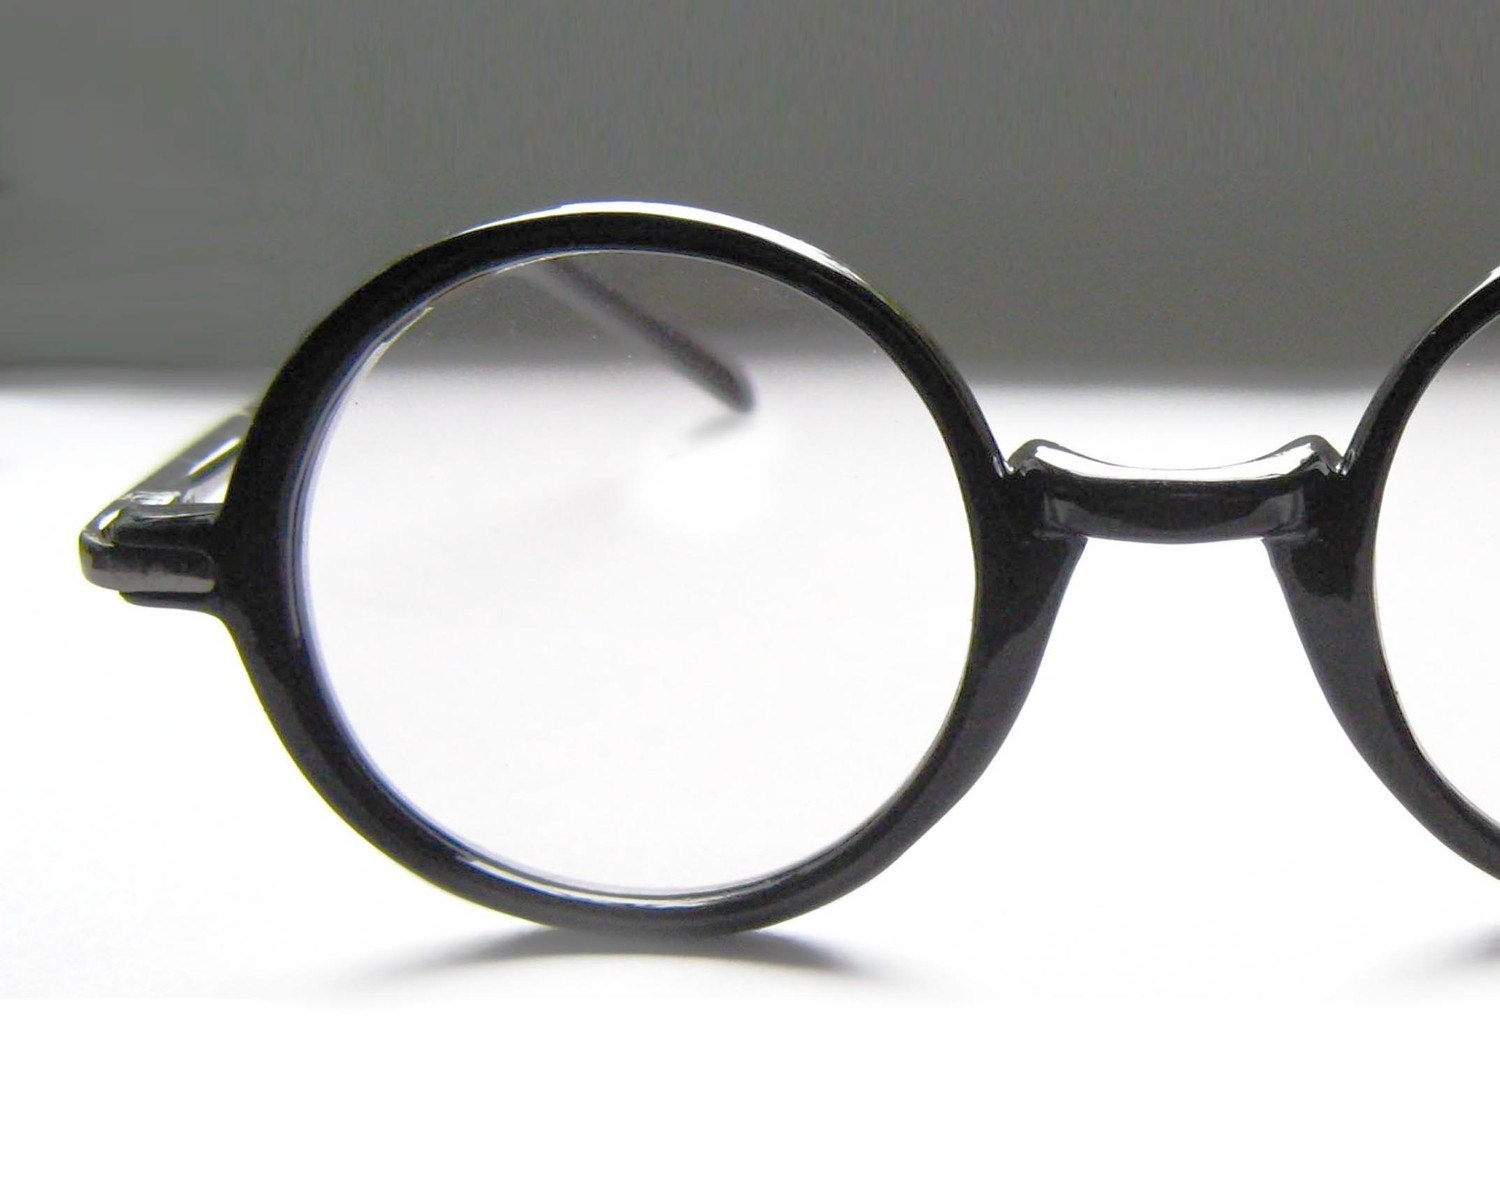 Eyeglass Frame Latest : Vintage 80s Round Black Eyeglass Frames